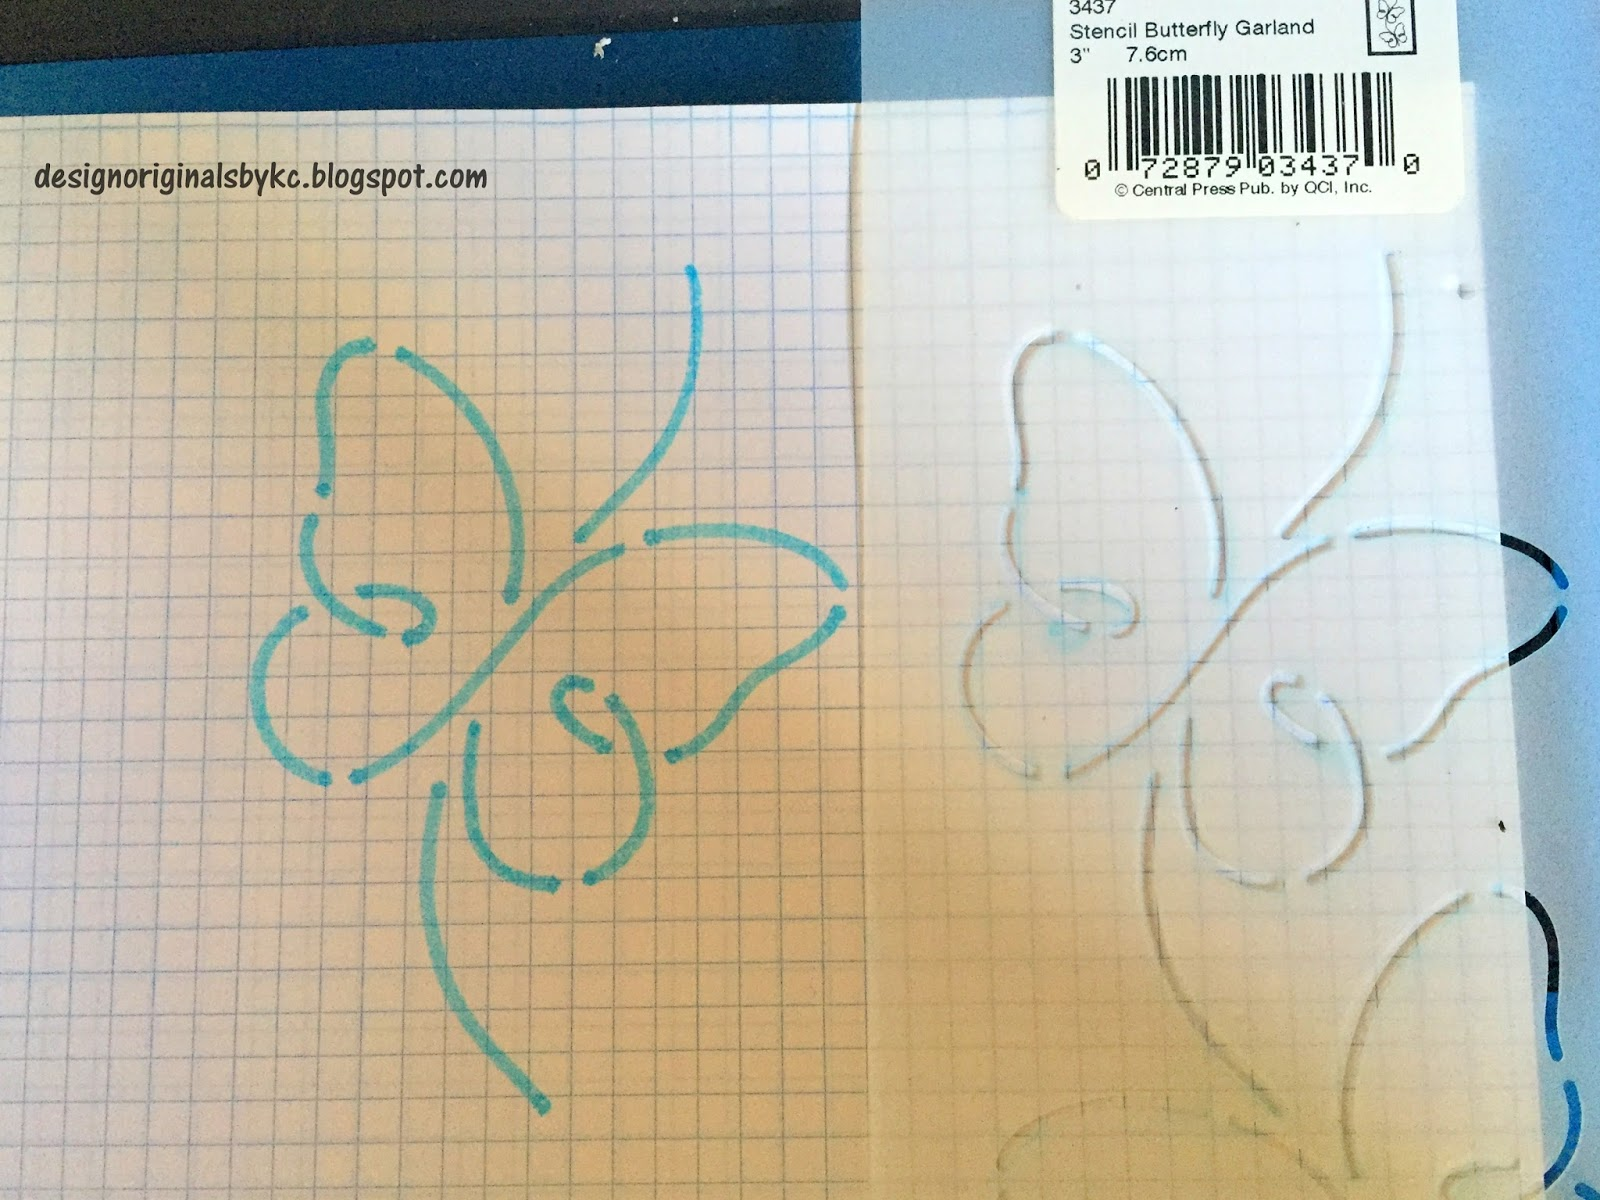 How To Use Stencils In Quilting : Design Originals by KC: Stencils and Hand Quilting with them ~ Tutorial